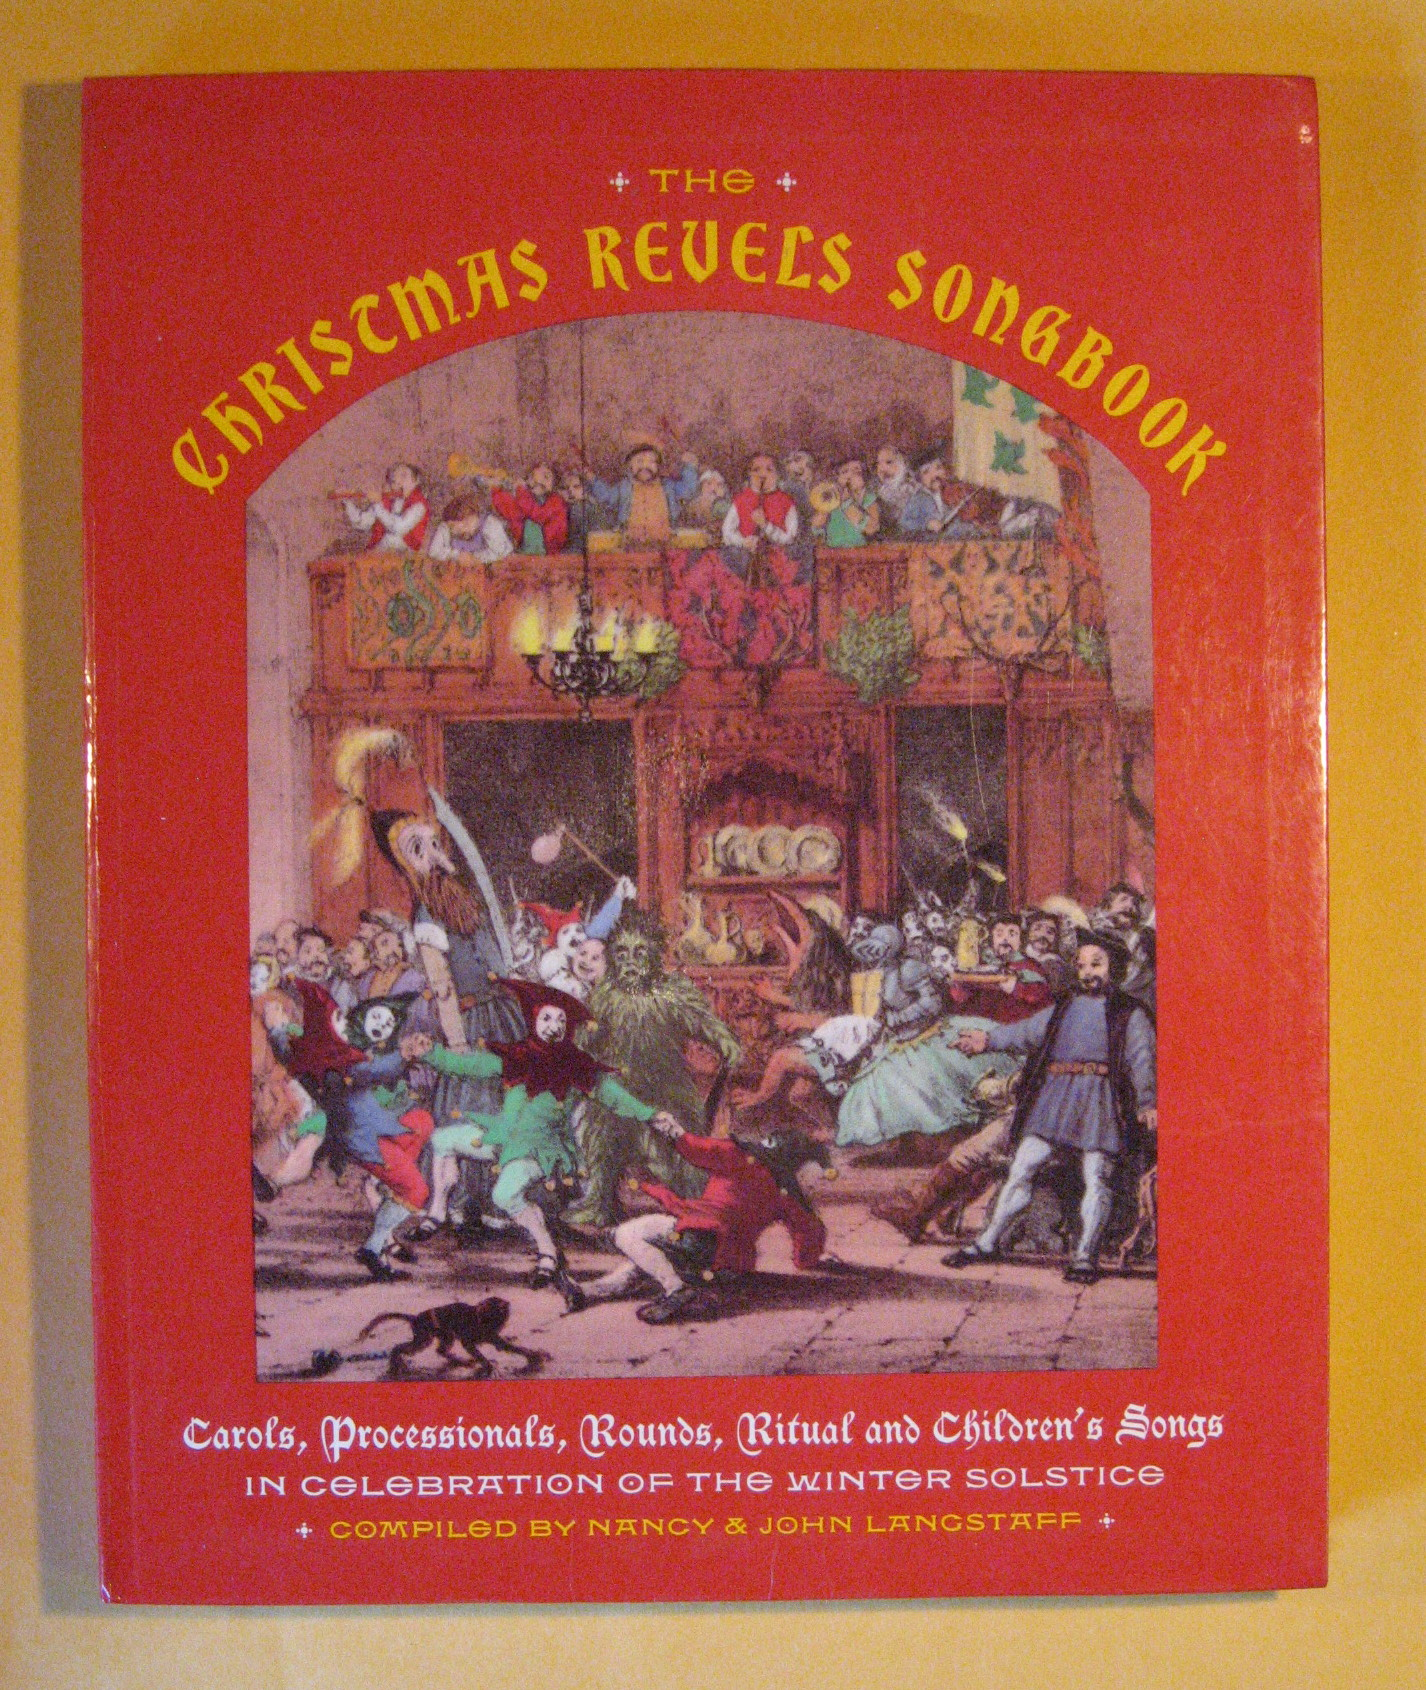 Christmas Revels Songbook: Carols, Processionals, Rounds, Ritual and Children's Songs in Celebration of the Winter Solstice, The, Langstaff, John and Nancy